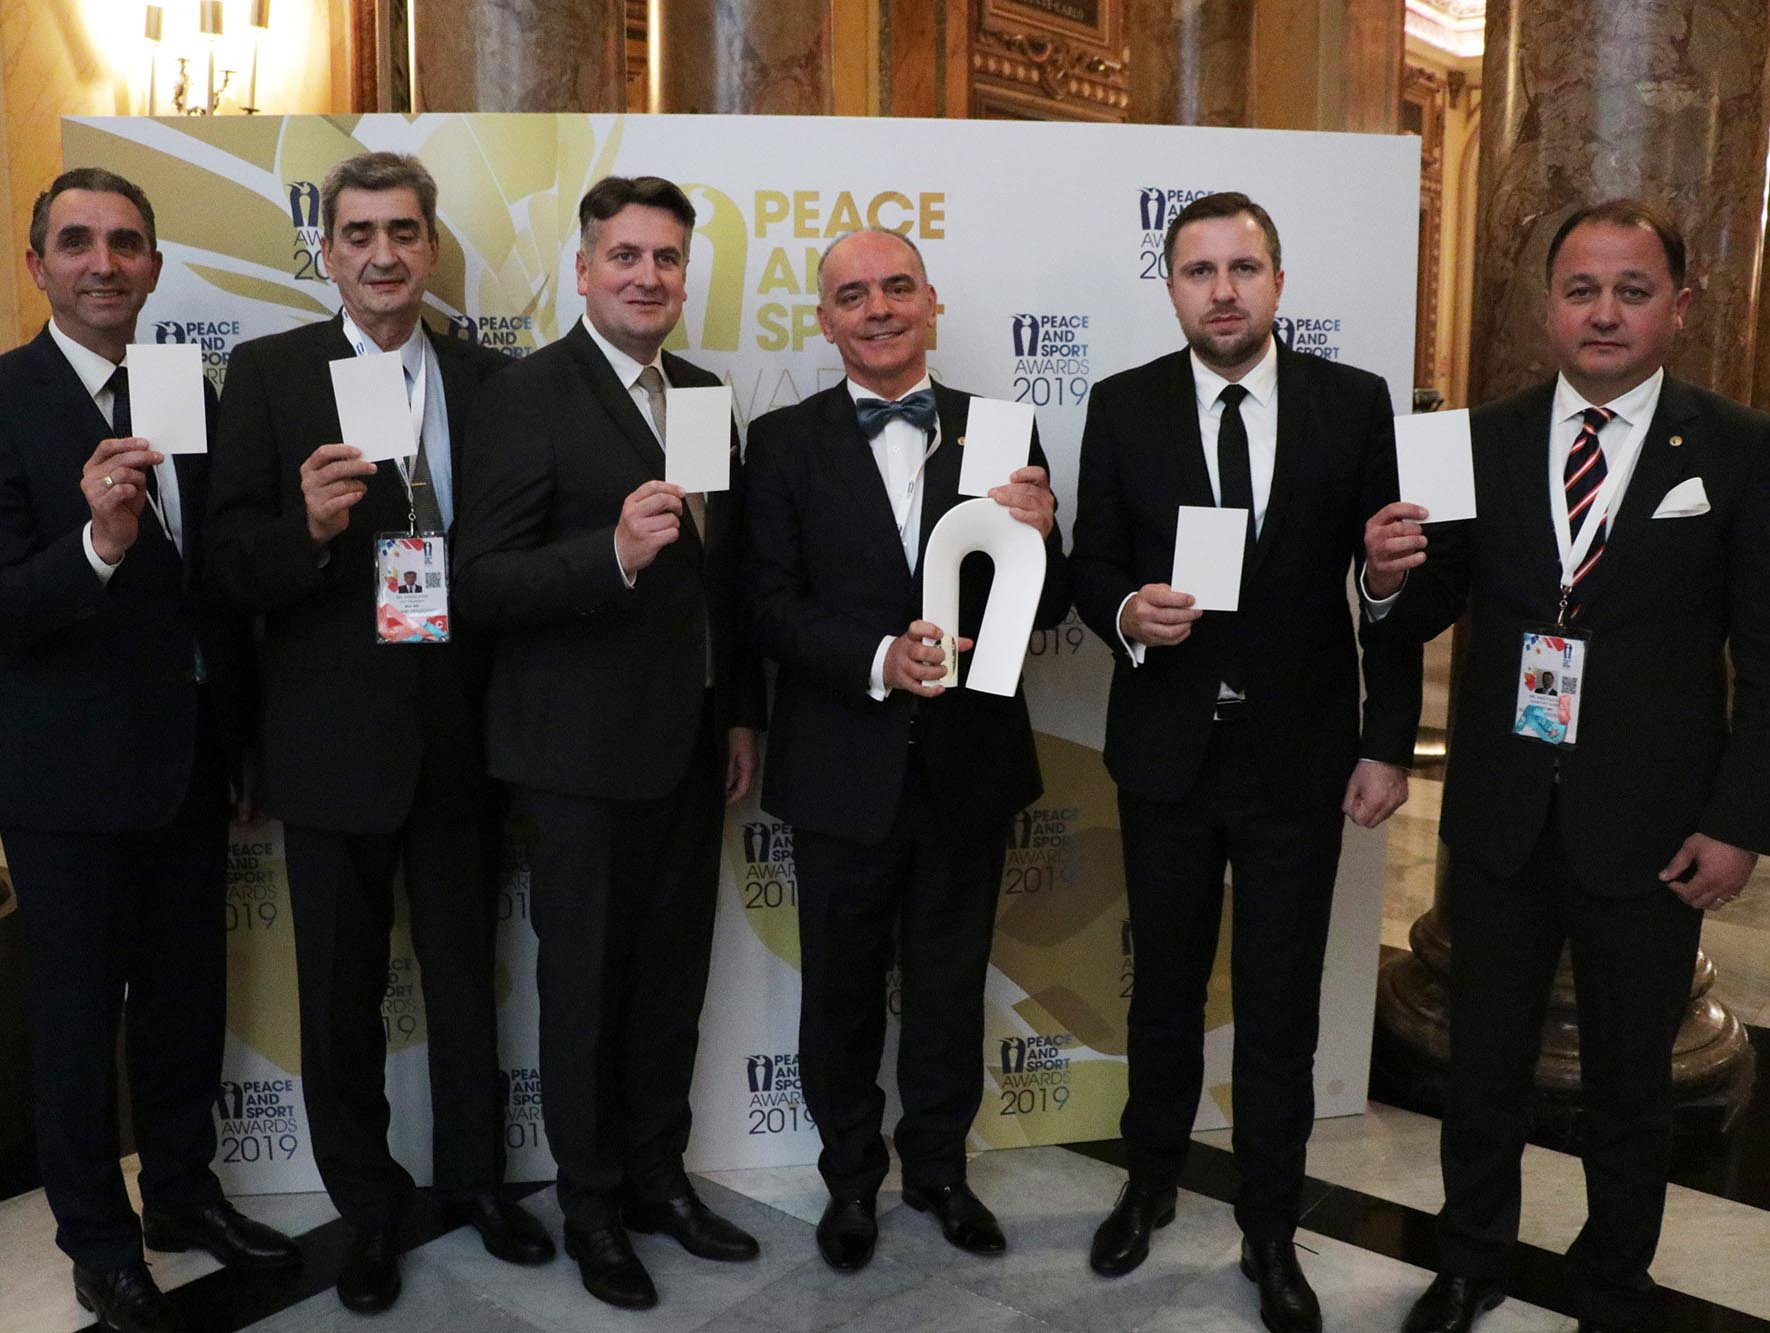 Other awards were given out, with the National Olympic Committee of Bosnia and Herzegovina and the two cities of Sarajevo and East Sarajevo receiving the diplomatic action of the year award ©Twitter